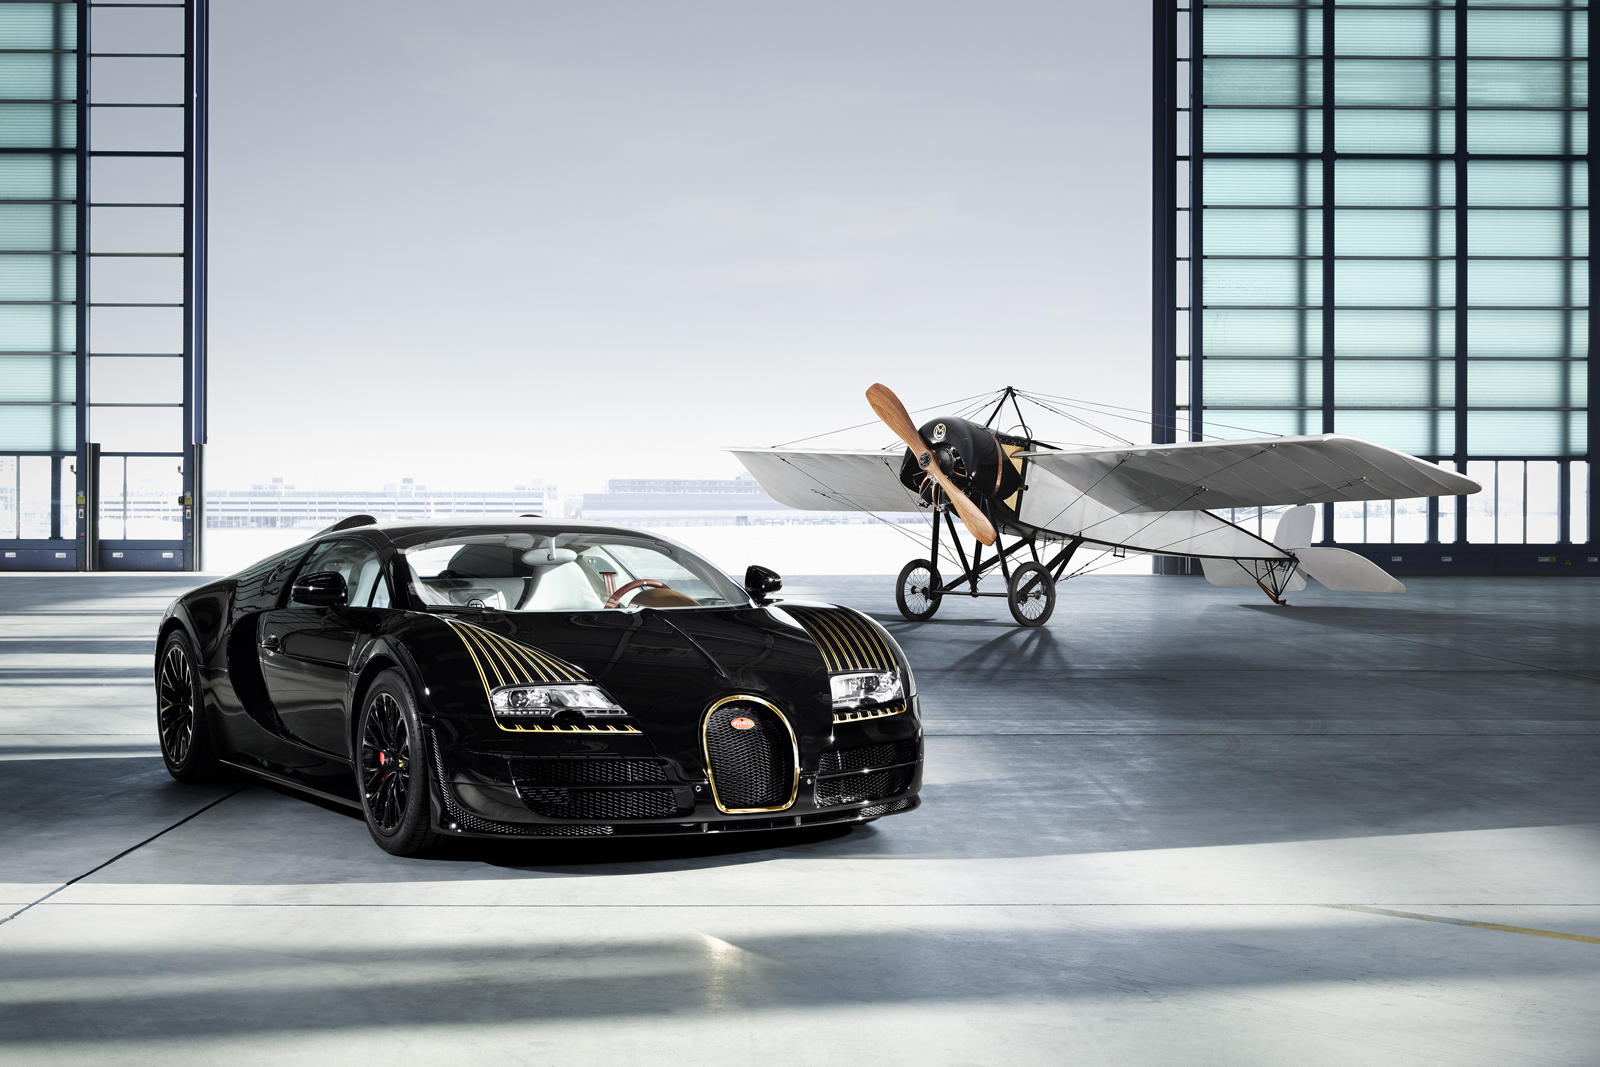 Bugatti Veyron Black Bess Mixes Gold Aviation And Carbon Fiber Photo Gallery on Bugatti Veyron W16 Engine